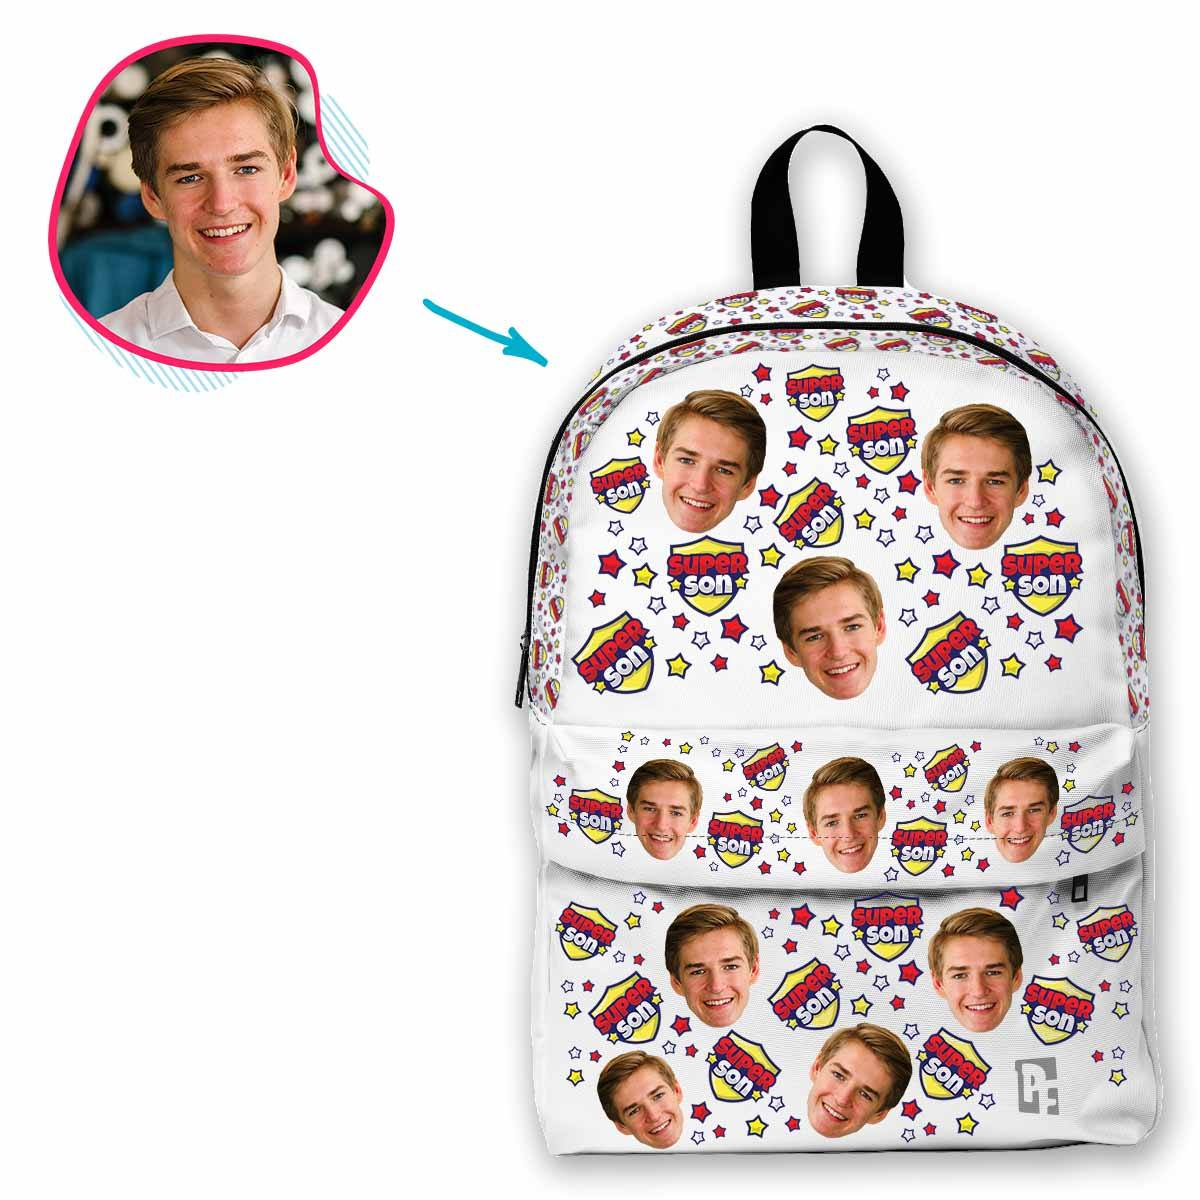 white Super Son classic backpack personalized with photo of face printed on it